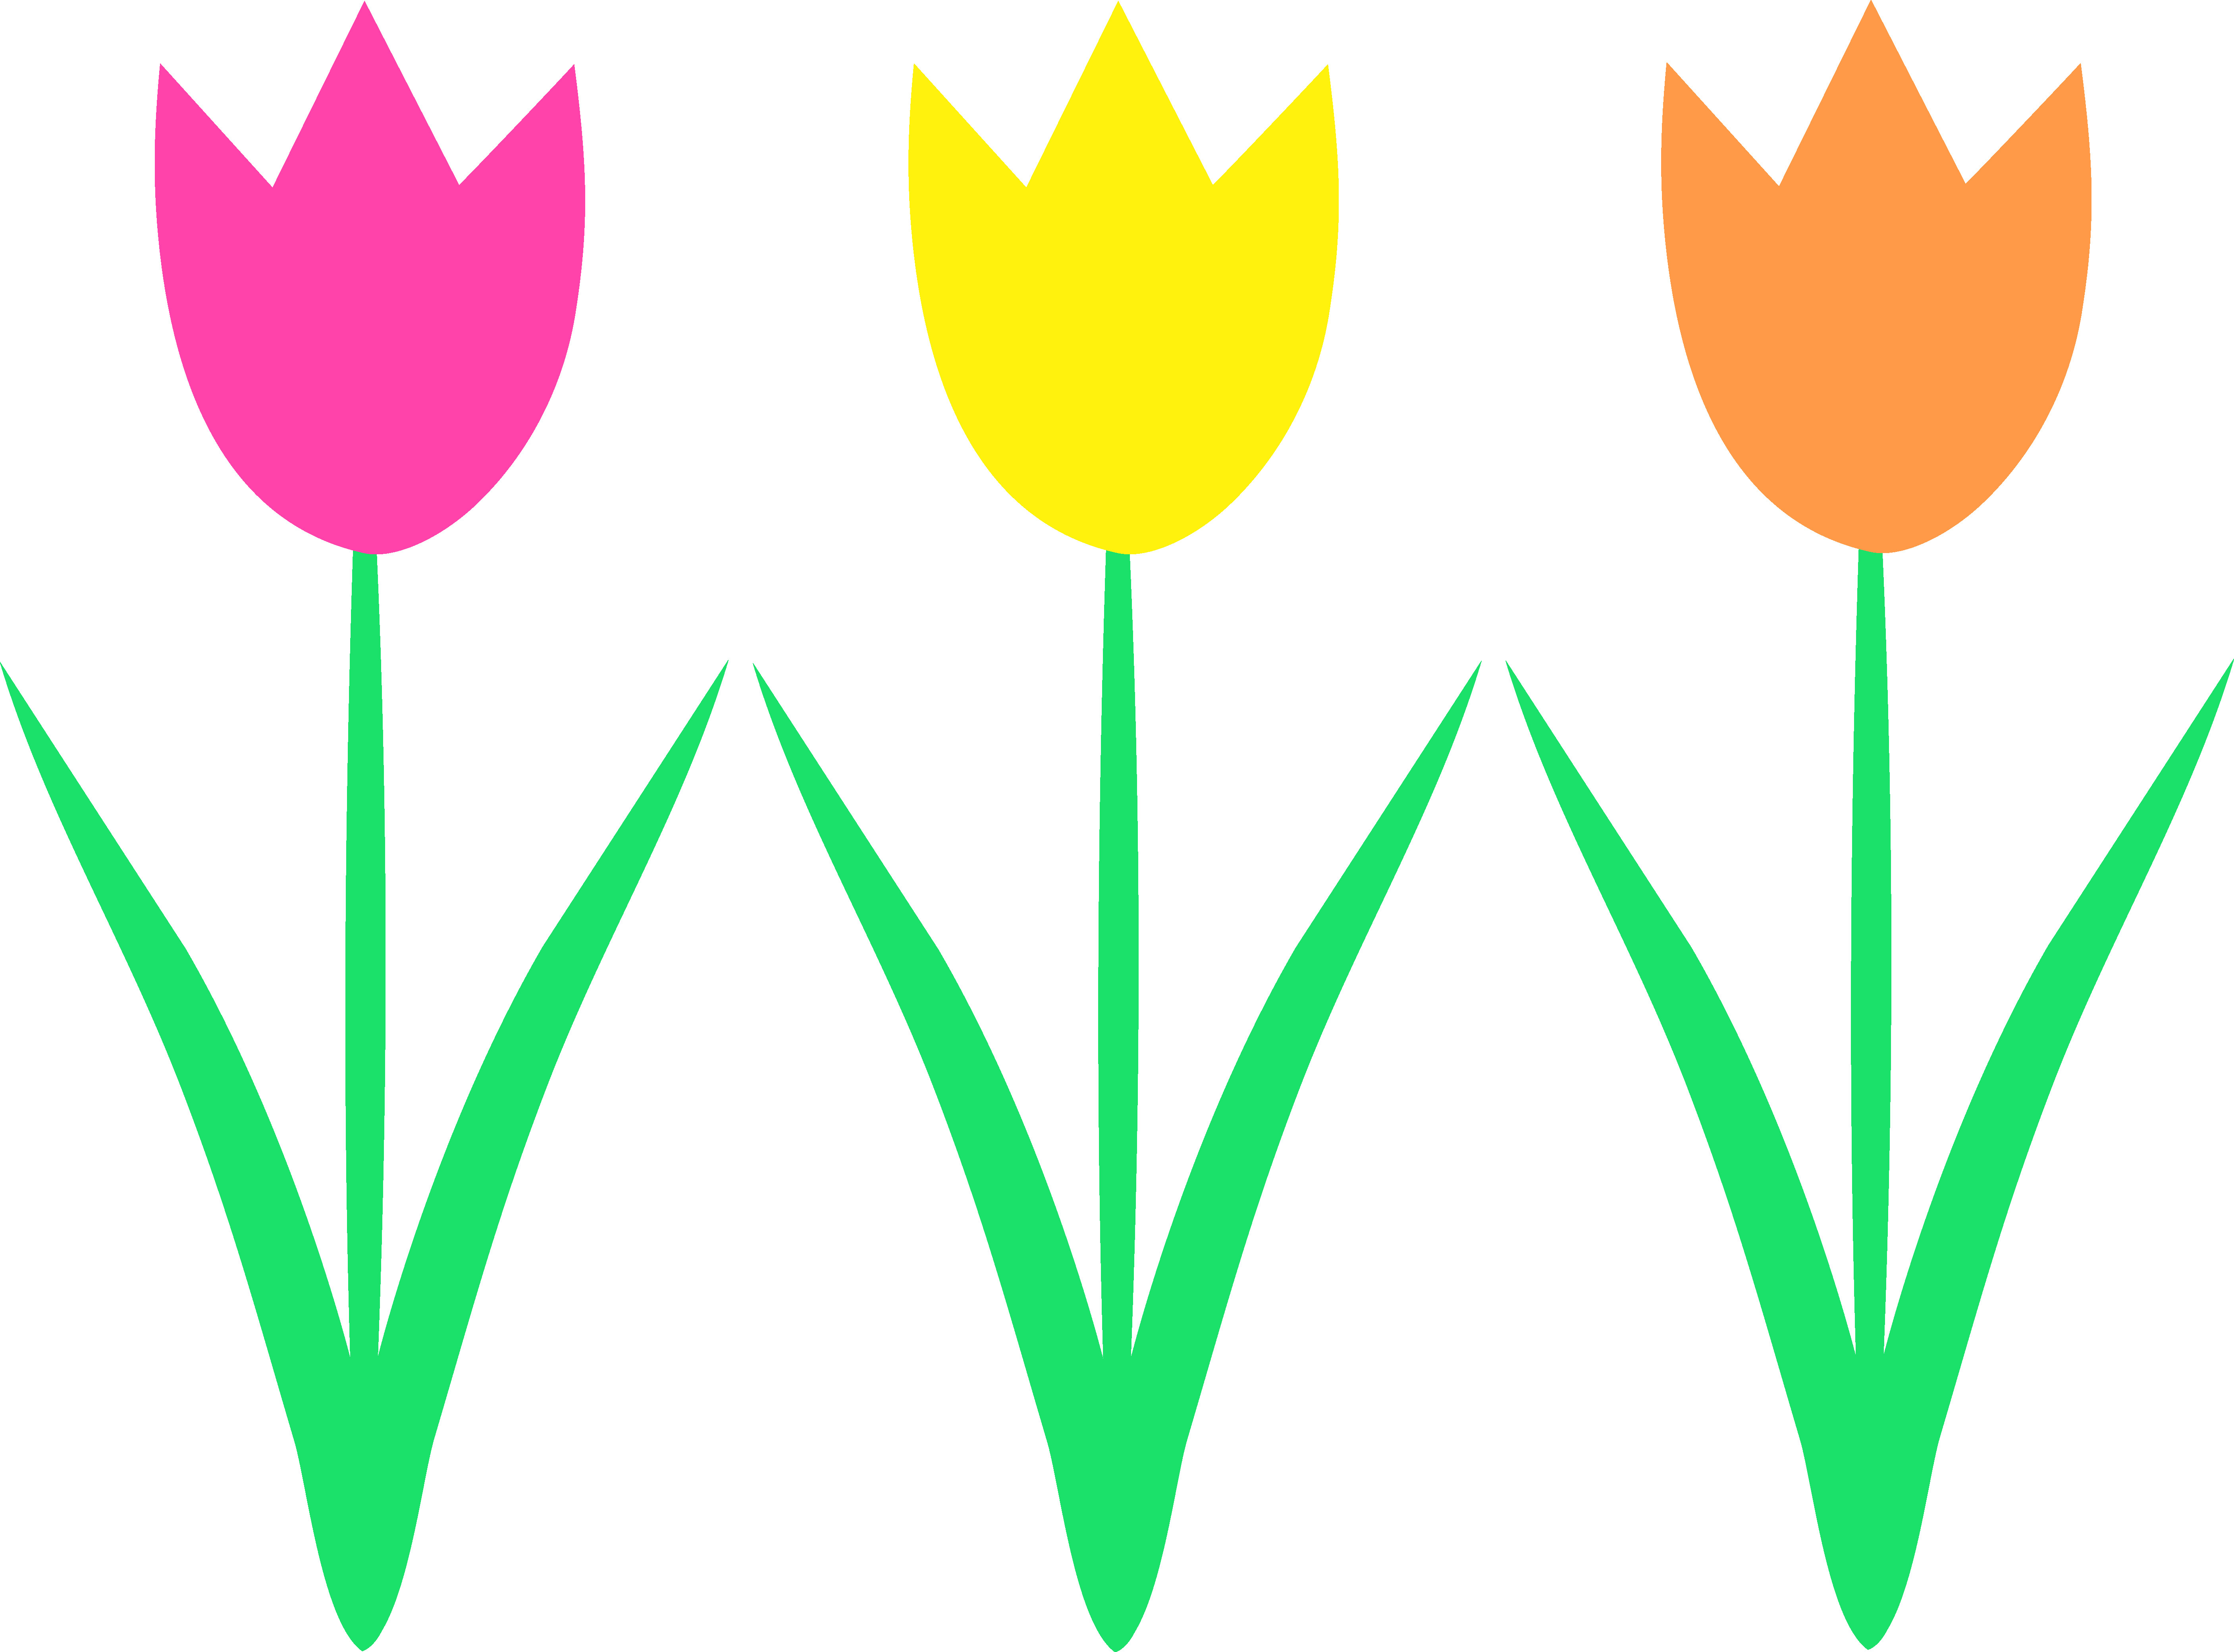 5627x4161 Free Clip Art Easter Flowers Tulips Clipart Image Clip Art